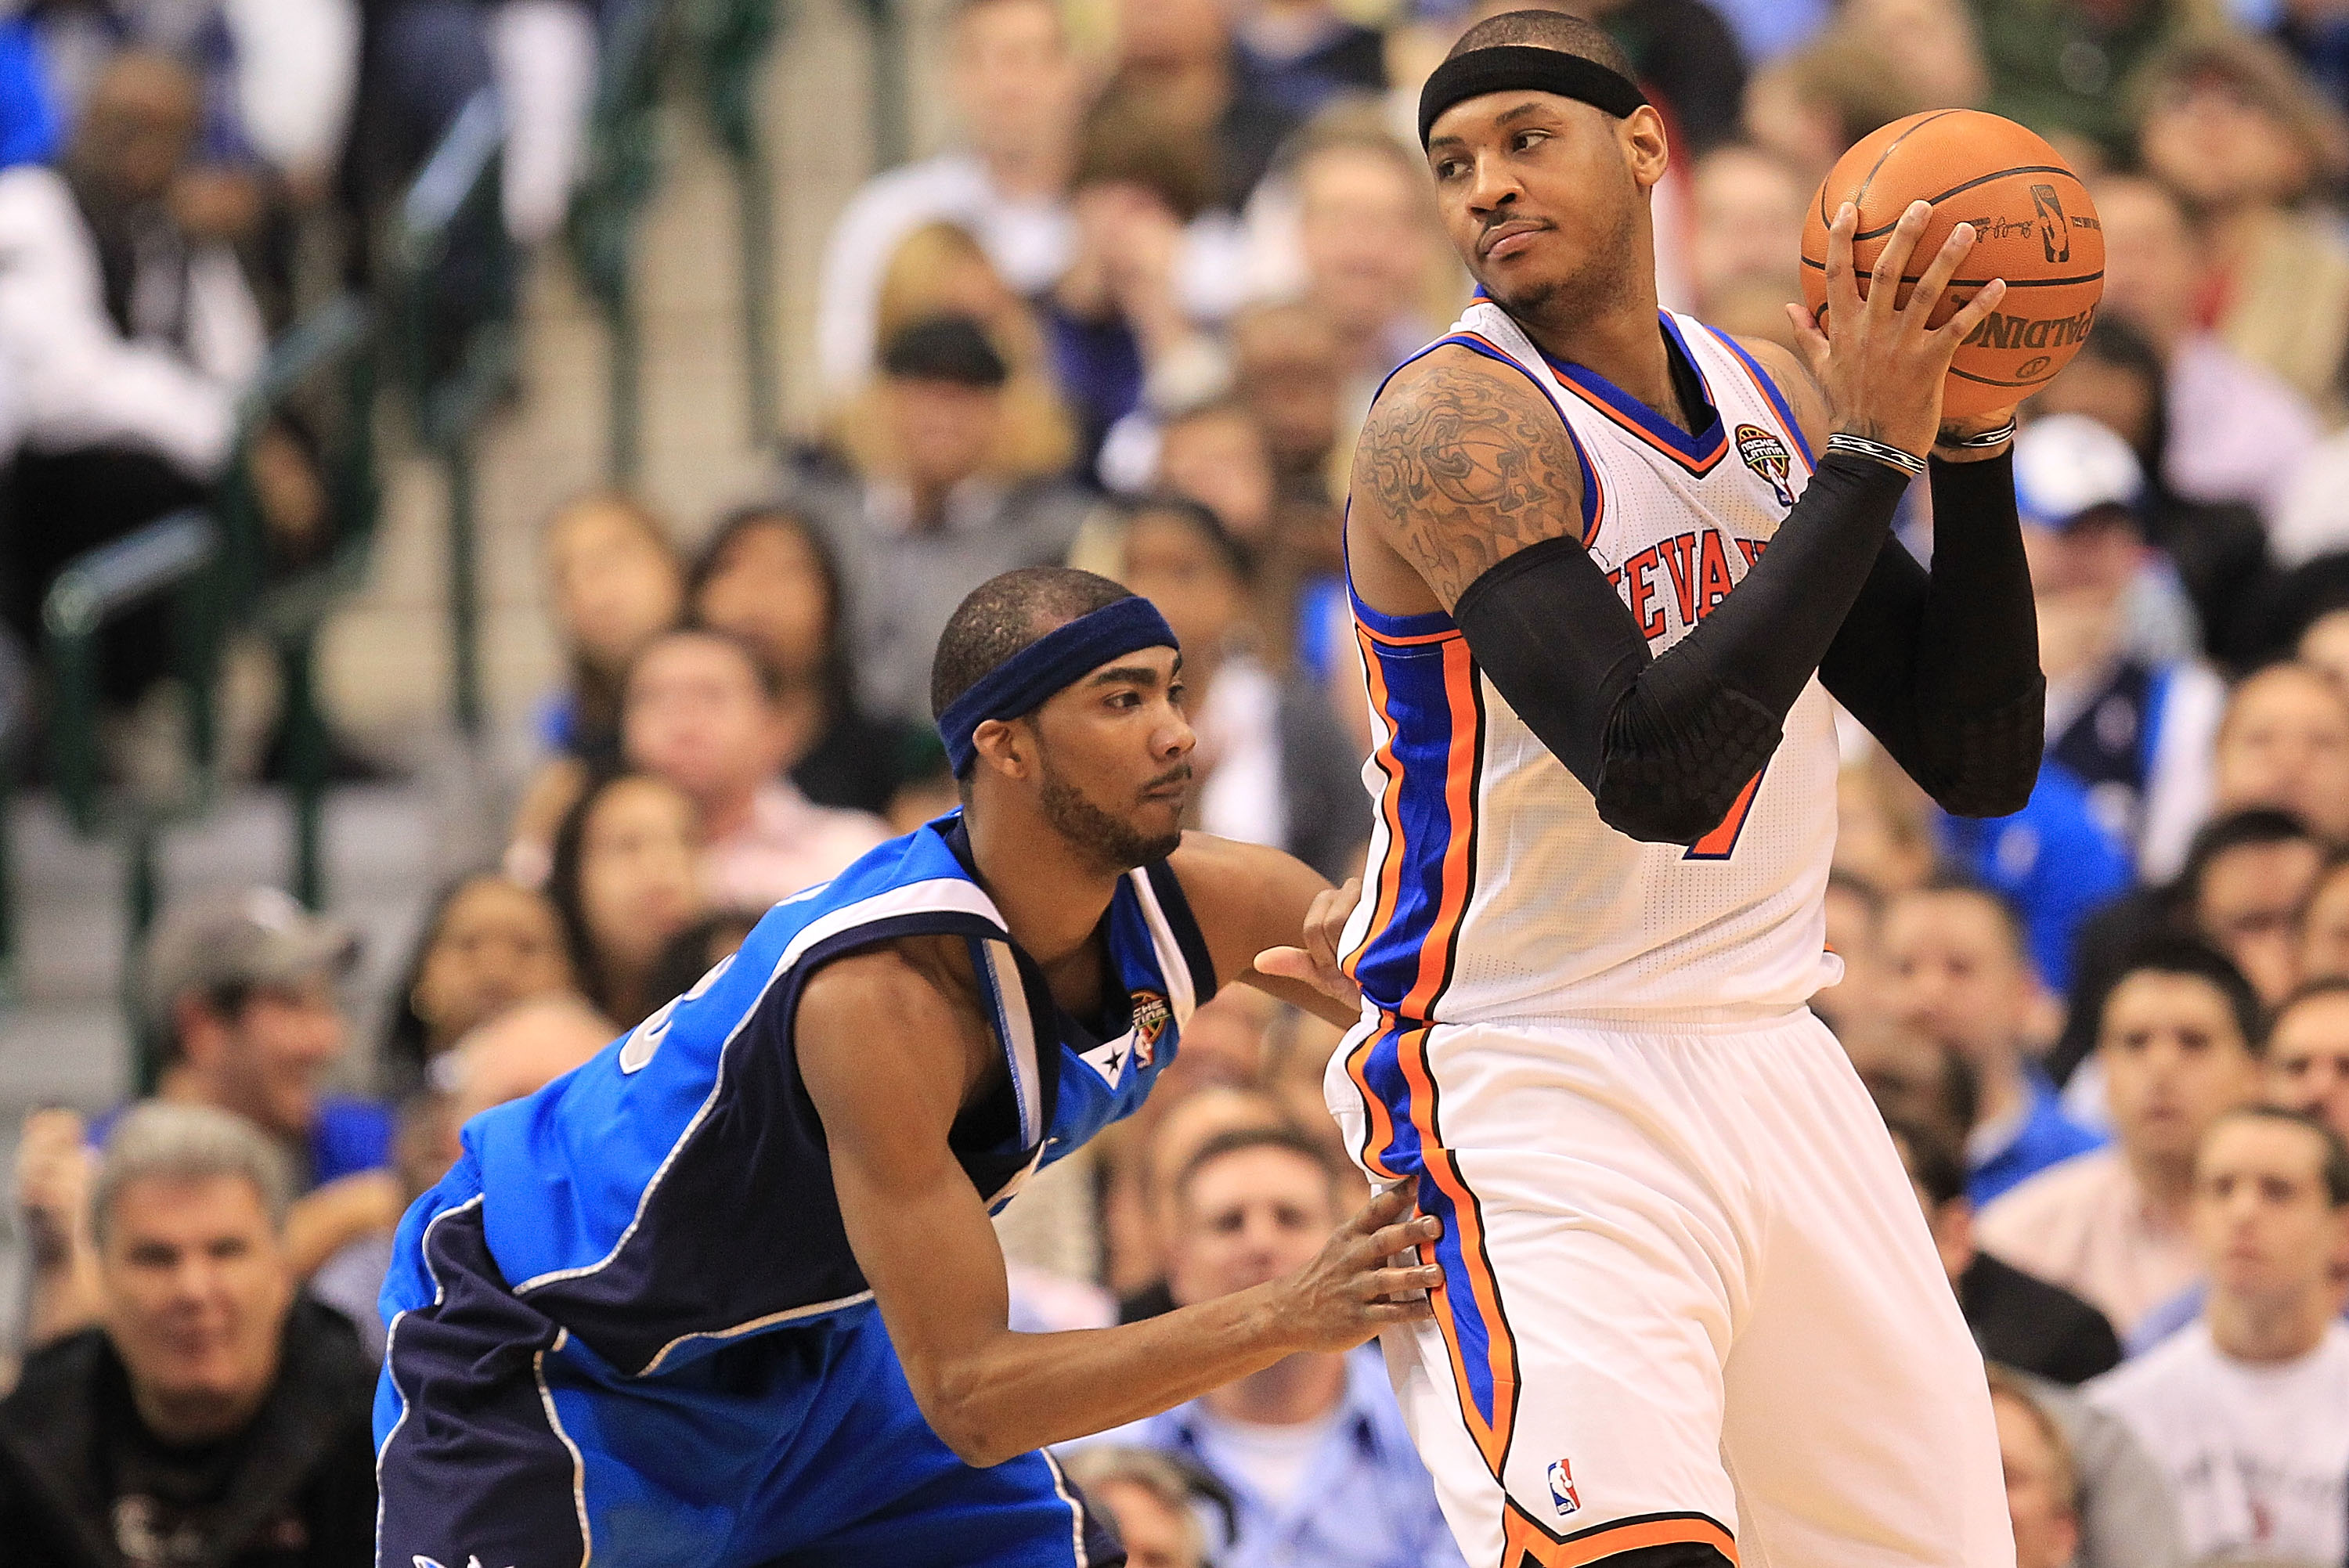 DALLAS, TX - MARCH 10:  Forward Carmelo Anthony #7 of the New York Knicks at American Airlines Center on March 10, 2011 in Dallas, Texas.  NOTE TO USER: User expressly acknowledges and agrees that, by downloading and or using this photograph, User is cons